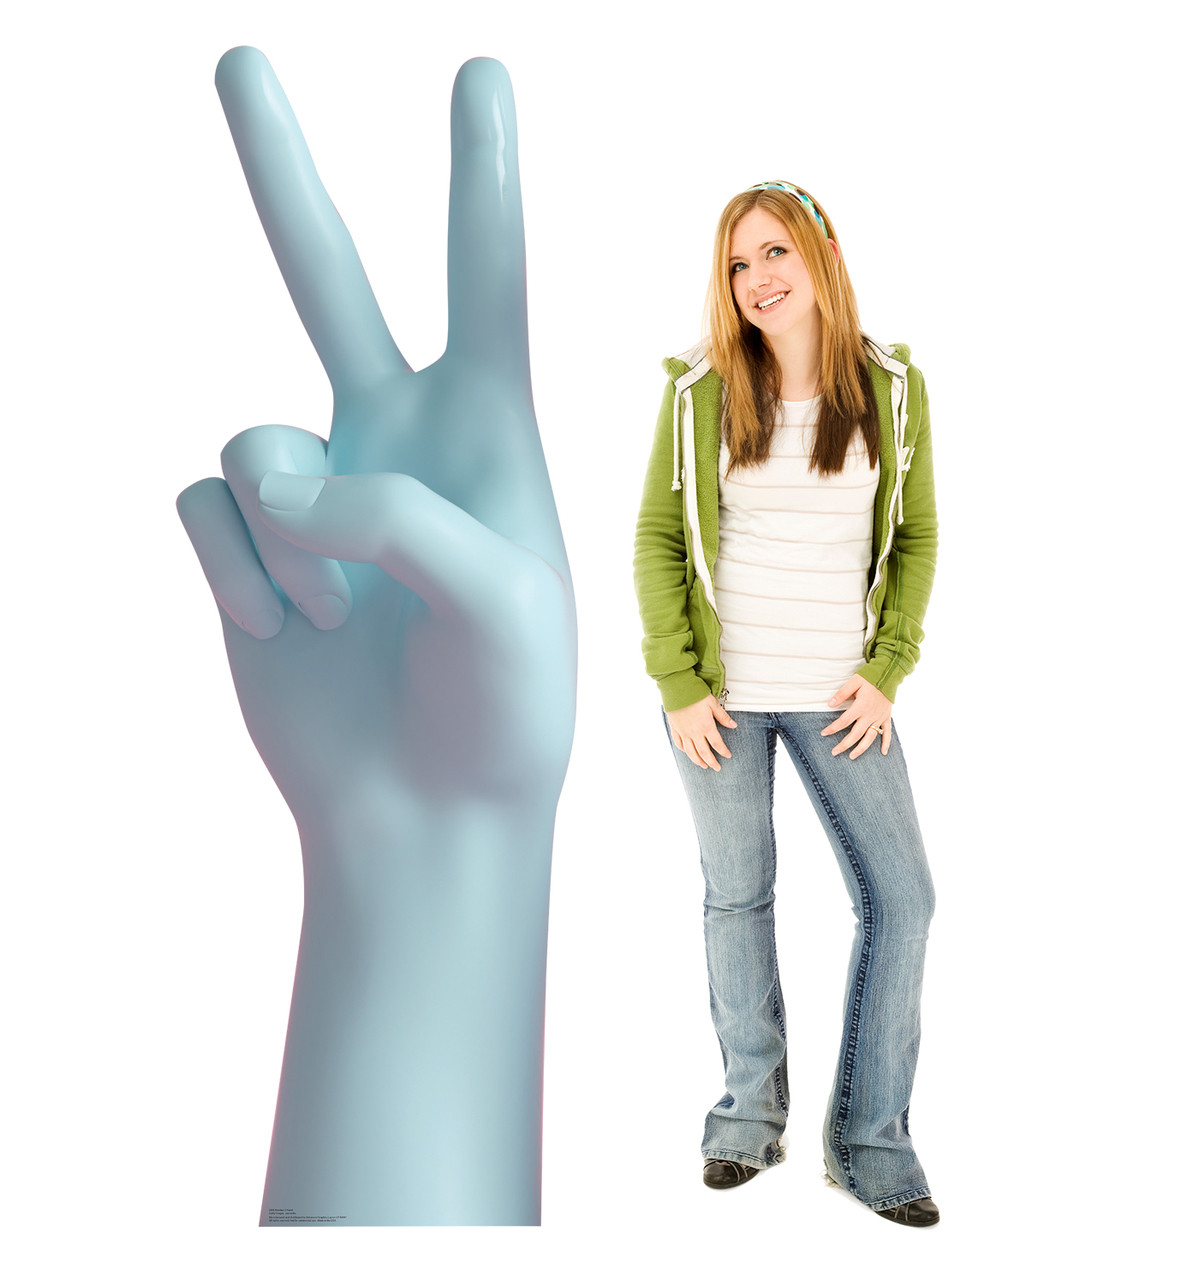 Life-size cardboard standee of a Number 2 Hand with model.